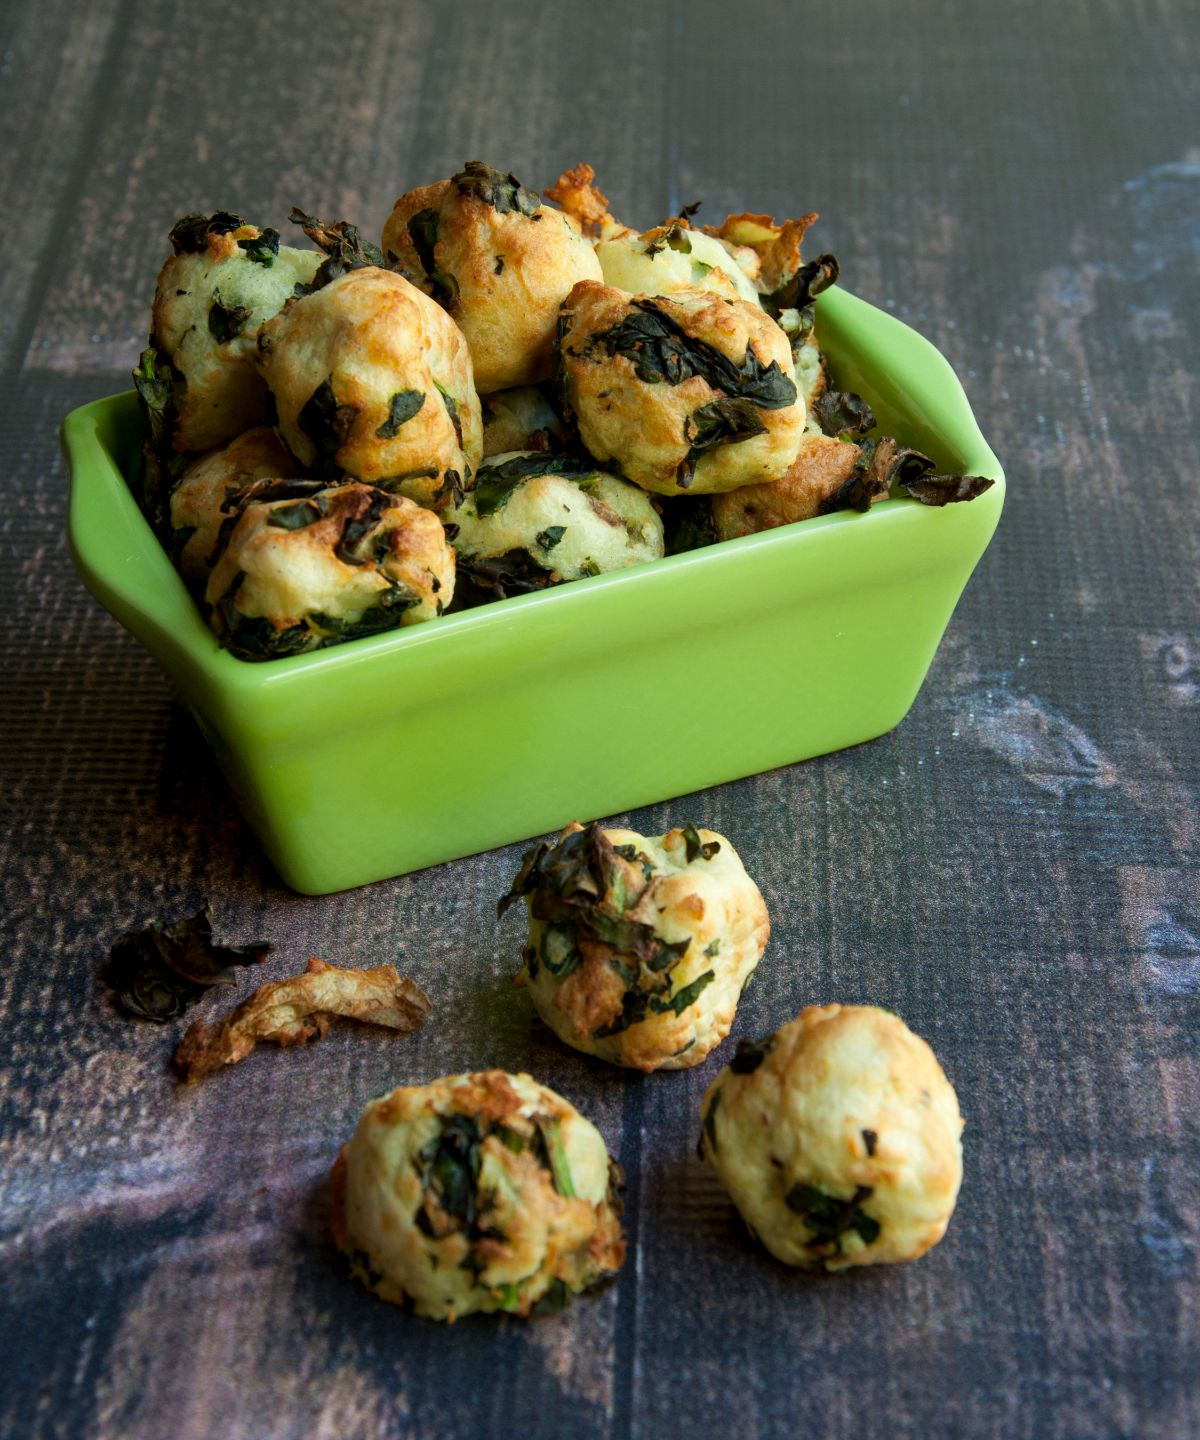 a green square casserole dish filled with potato and kale nuggets. Some have spilled out onto the gray surface